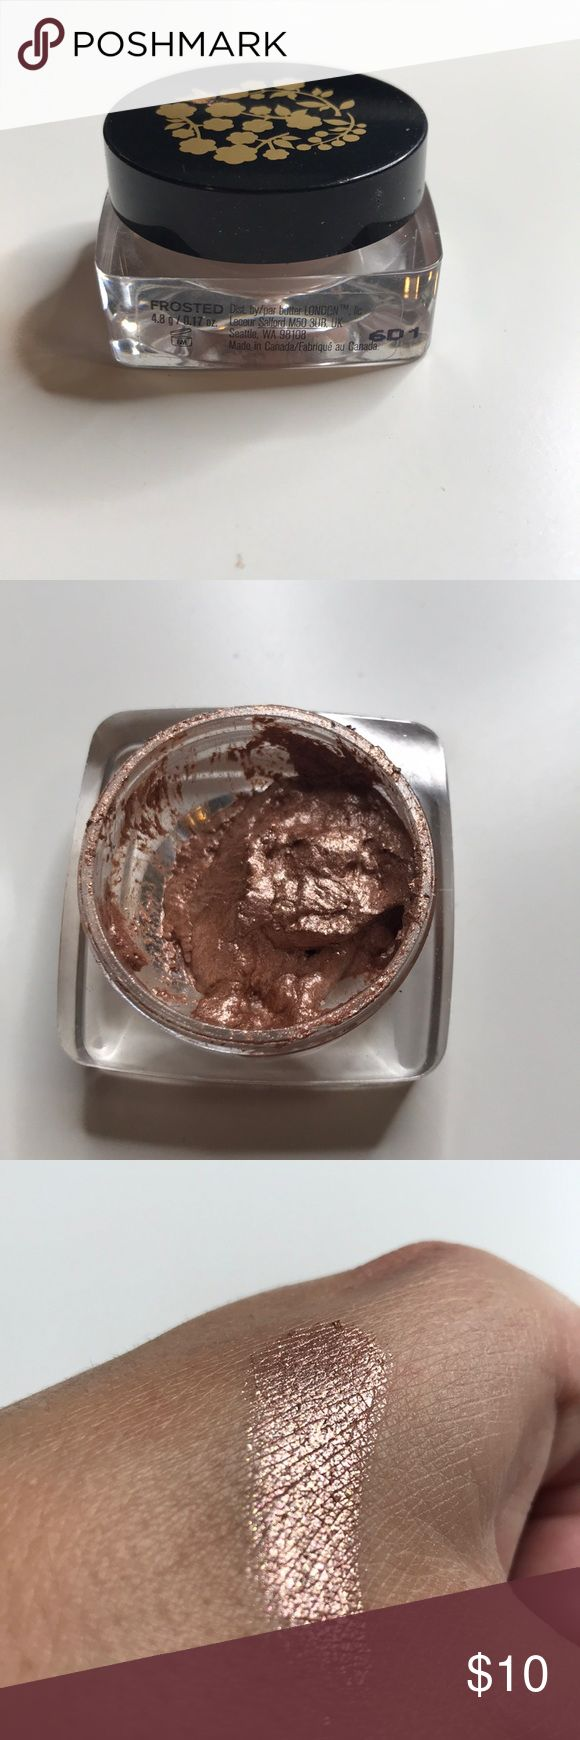 Butter London eye glaze Color is frosted. Does not crease on the eye. Has been used a few times. Has a gel consistency. Color is like a rose gold Makeup Eyeshadow